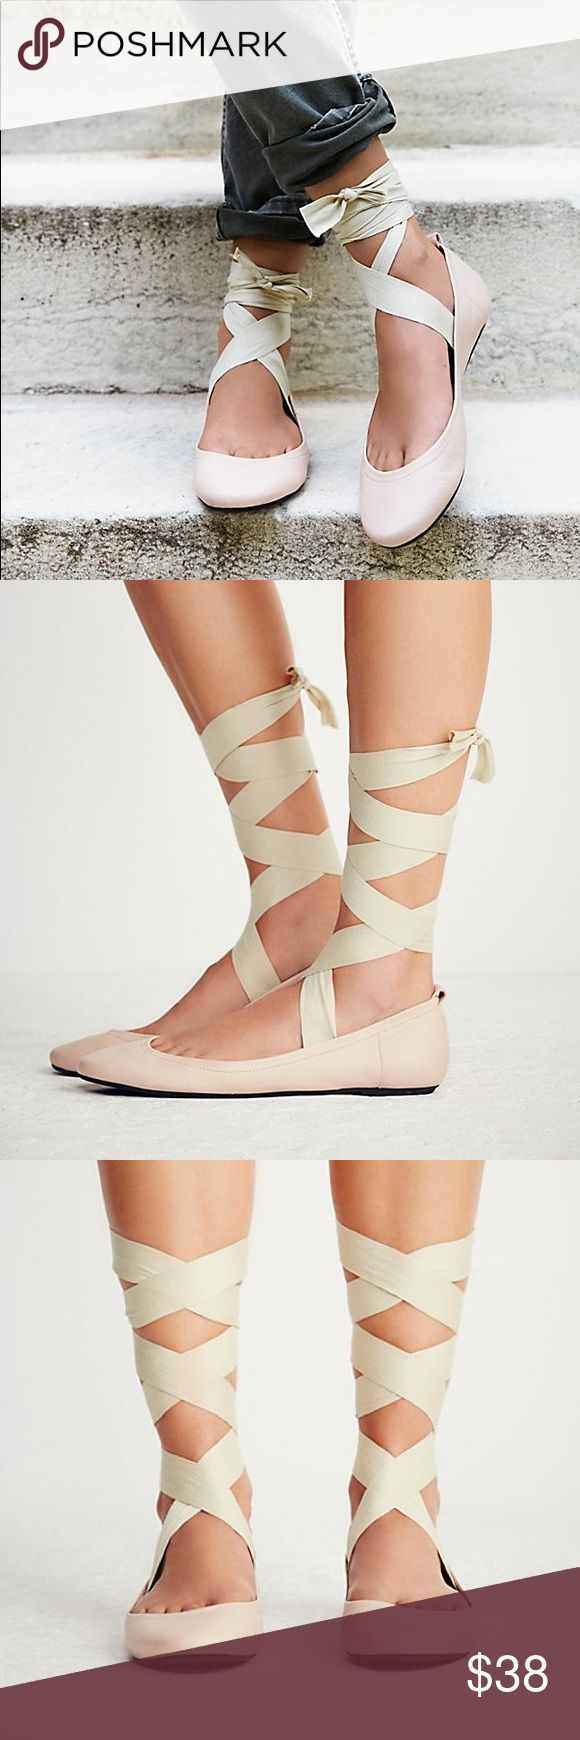 Free People Degas Flats New NWOT  Free People Degas ballet flats. Light pink leather shoe with off-white cream lace up ribbon straps. Tie at the ankle. Made in Spain. Size 38. Light wear from store handling Free People Shoes Flats & Loafers